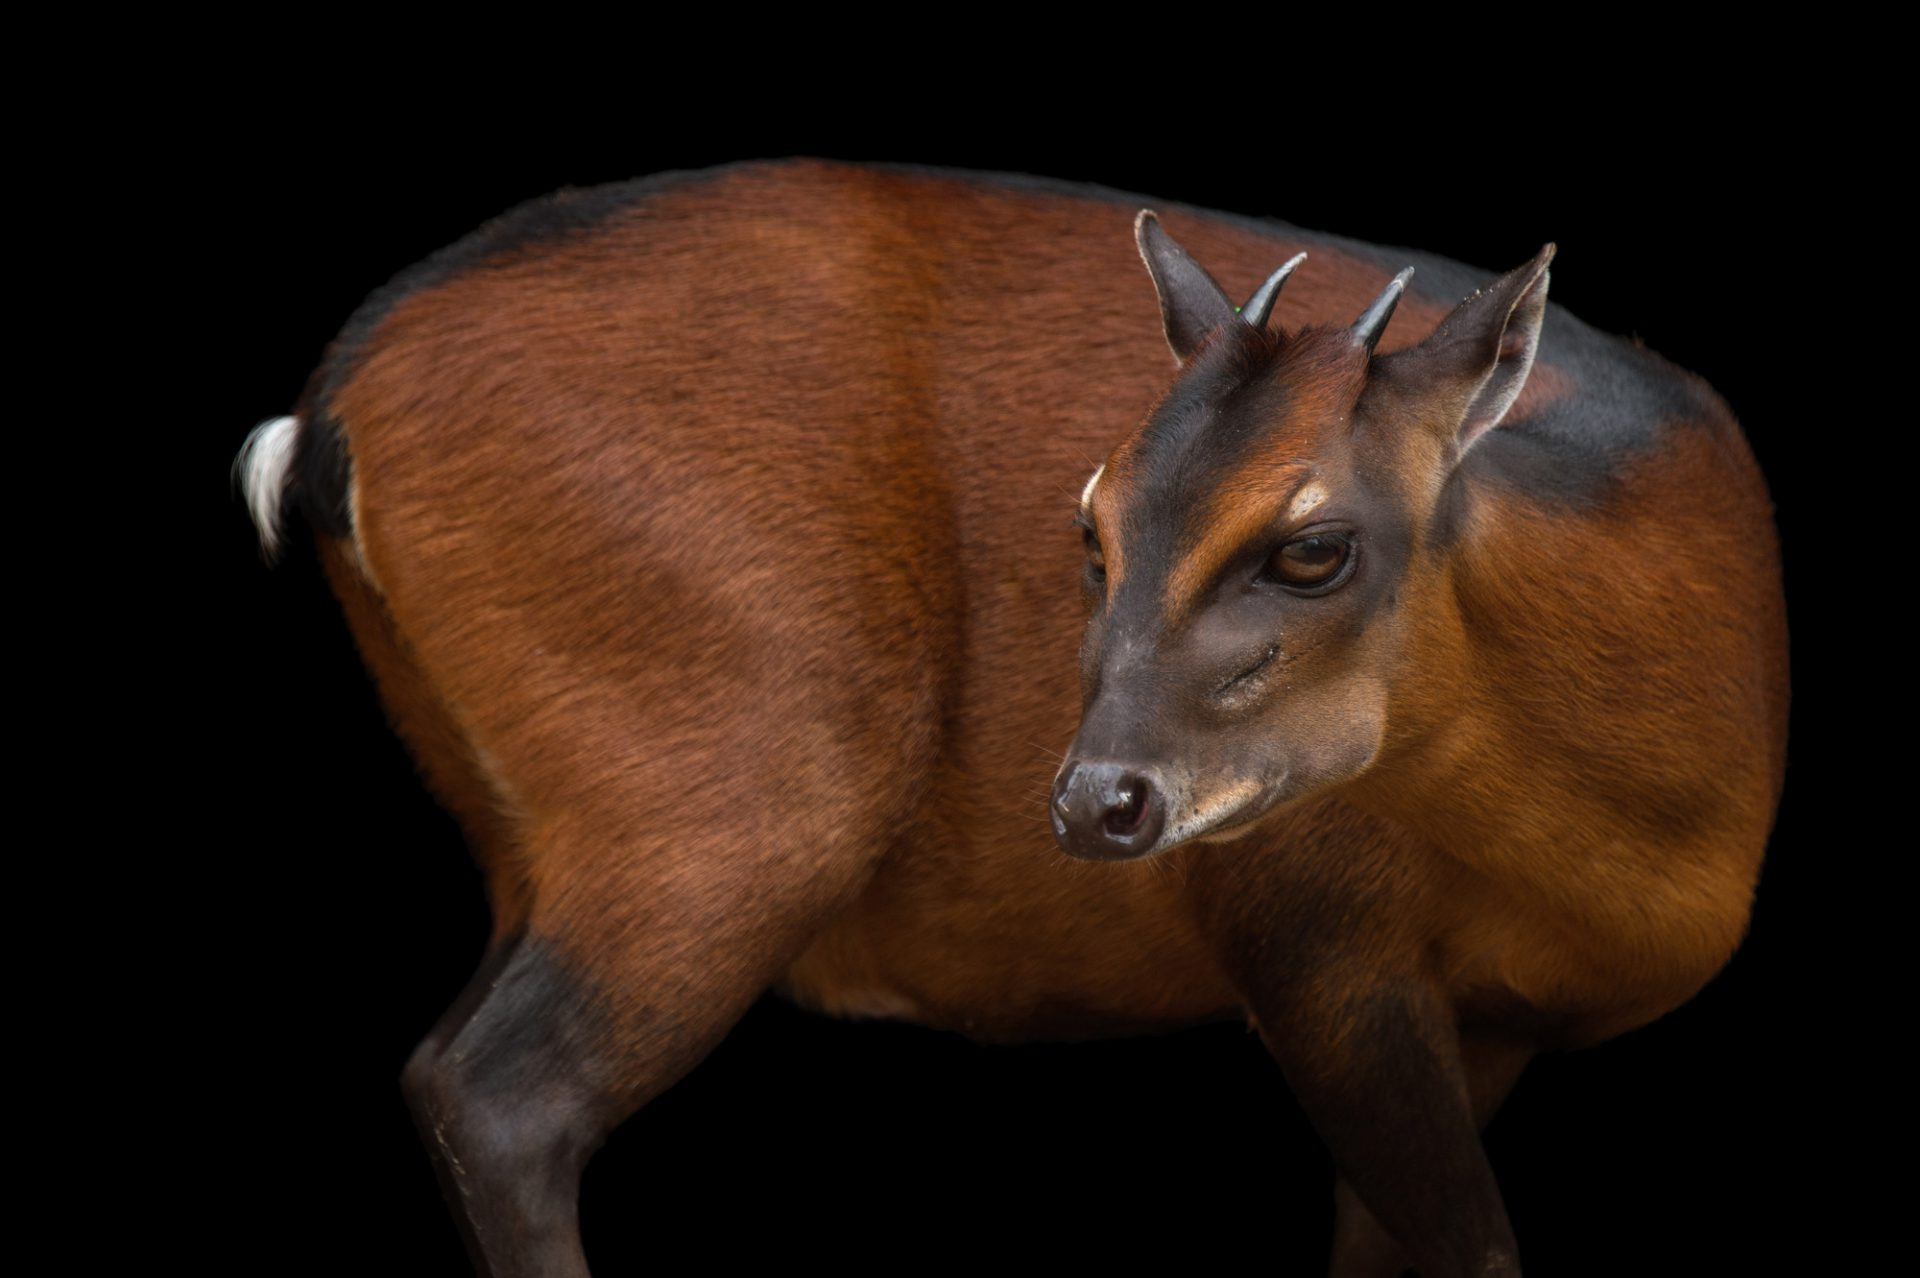 Picture of a bay duiker (Cephalophus dorsalis) named Billy Bob at the Ellen Trout Zoo.